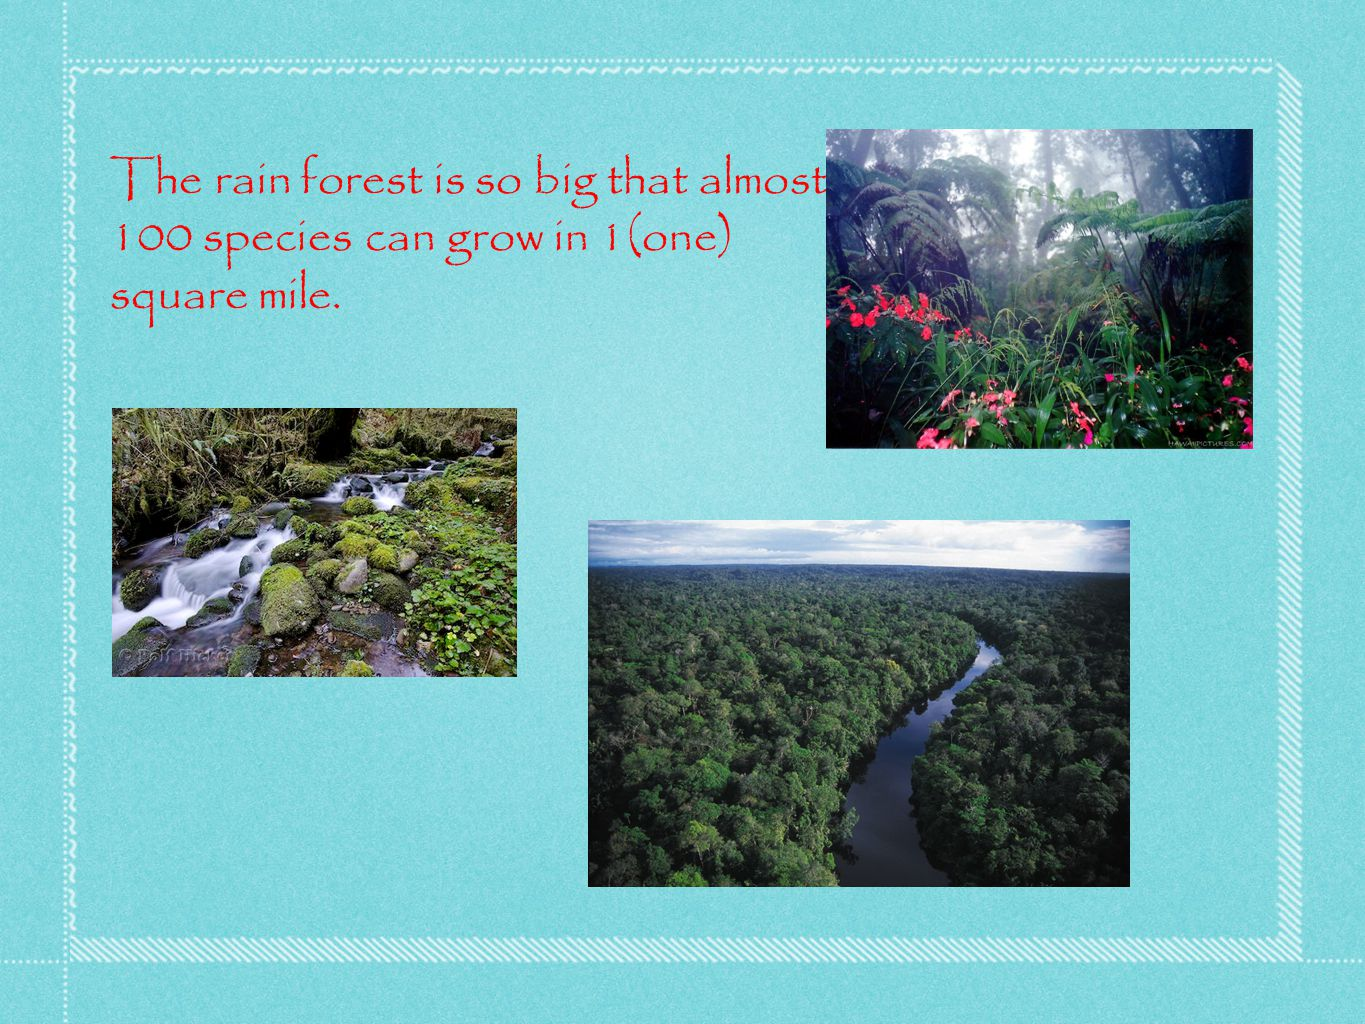 The rain forest is so big that almost 100 species can grow in 1(one) square mile.